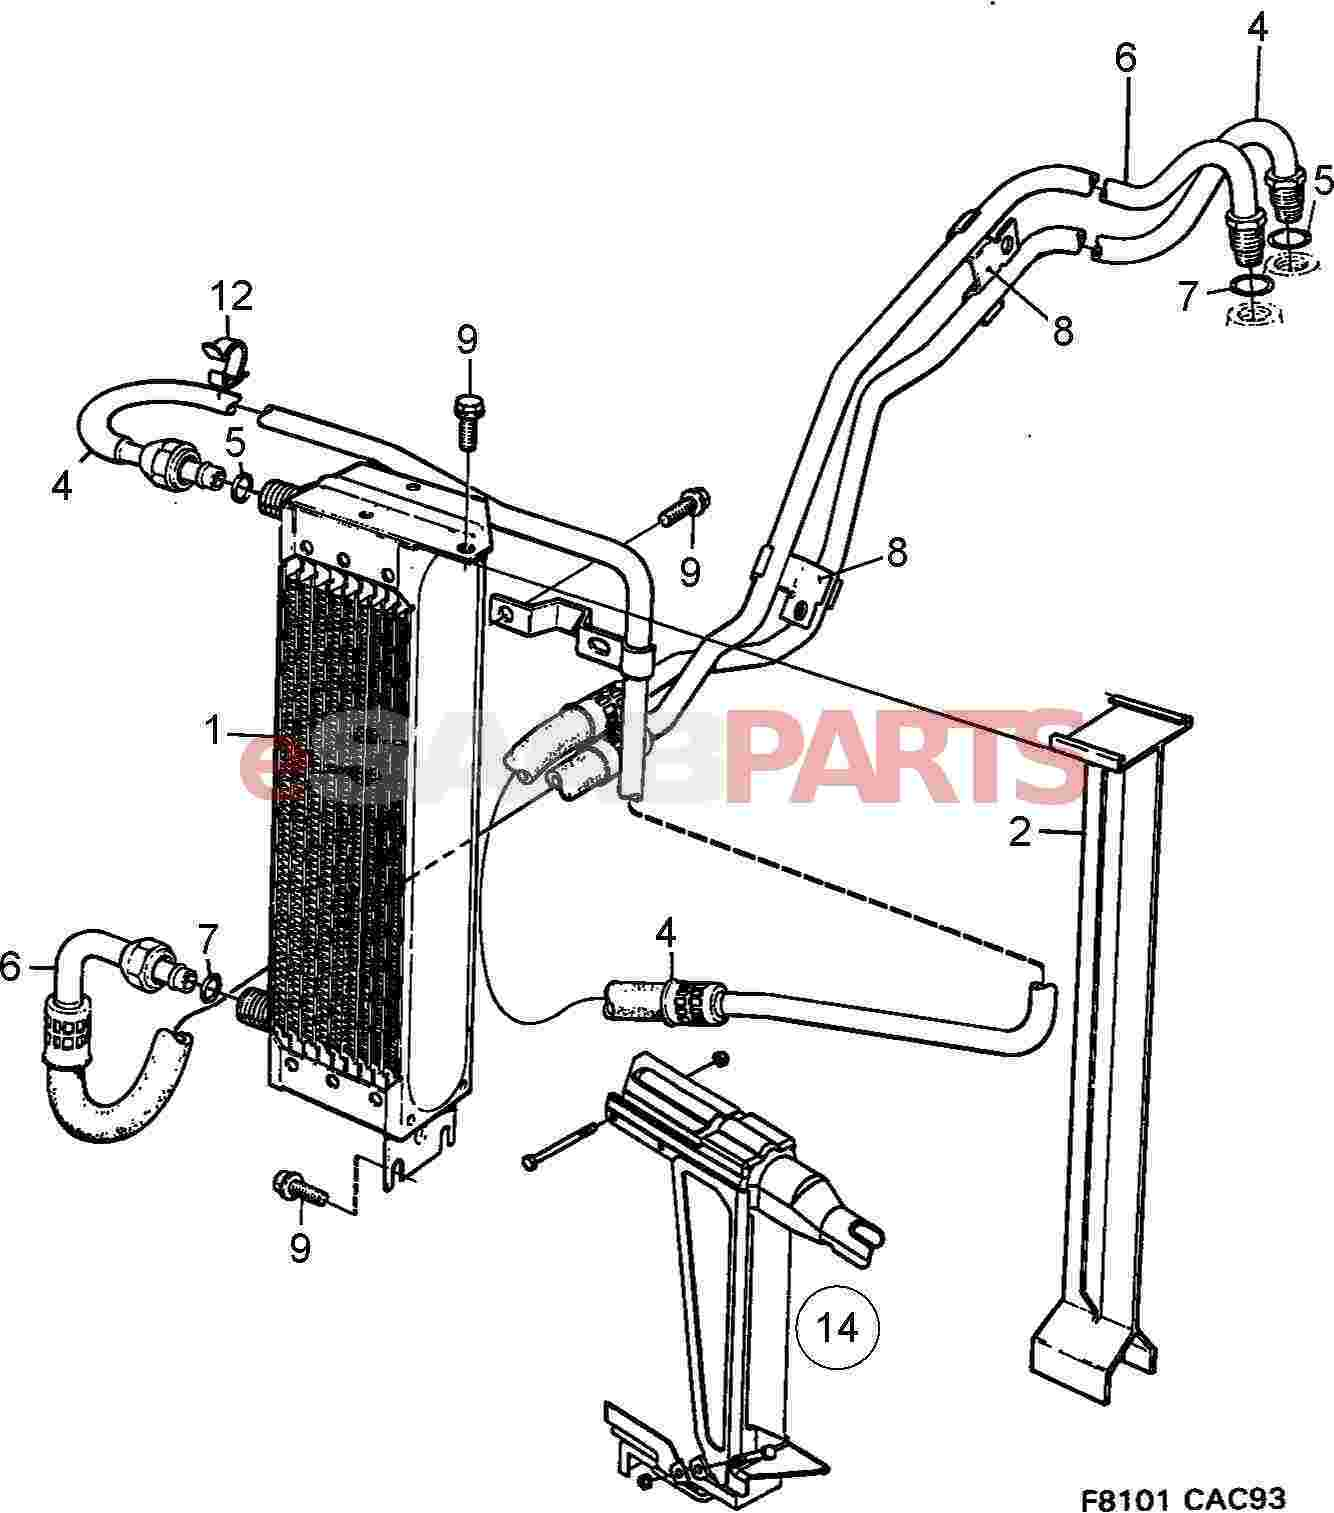 4725867 saab oil cooler genuine saab parts from esaabparts com rh esaabparts com Ford Cortina Engine Diagram Ford Cortina Engine Diagram